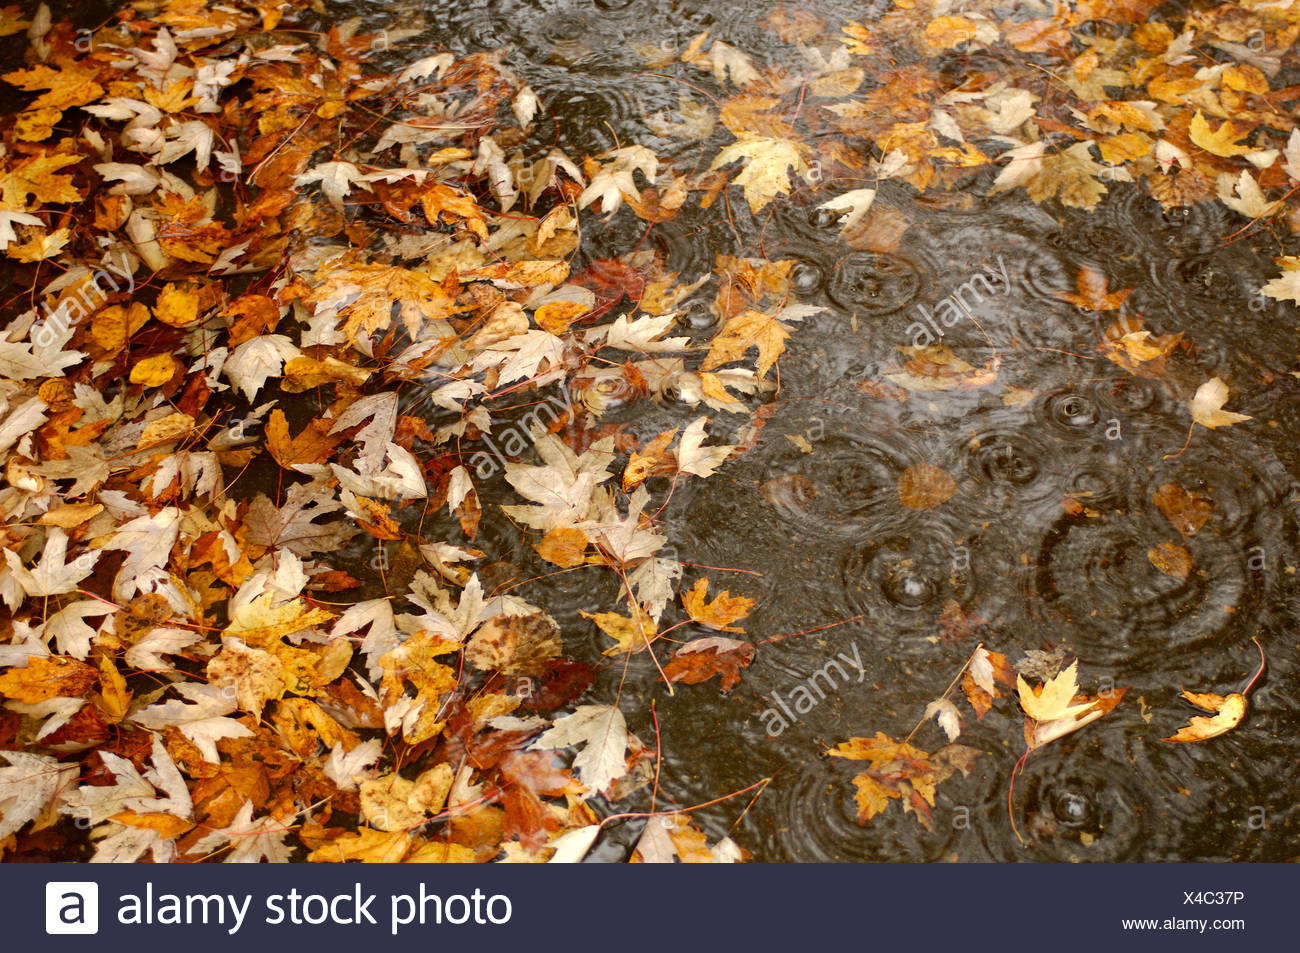 autumn foliage sheets leaves bad weather rains wood forest rainfall water wet weather Indian summer Edmun - Stock Image